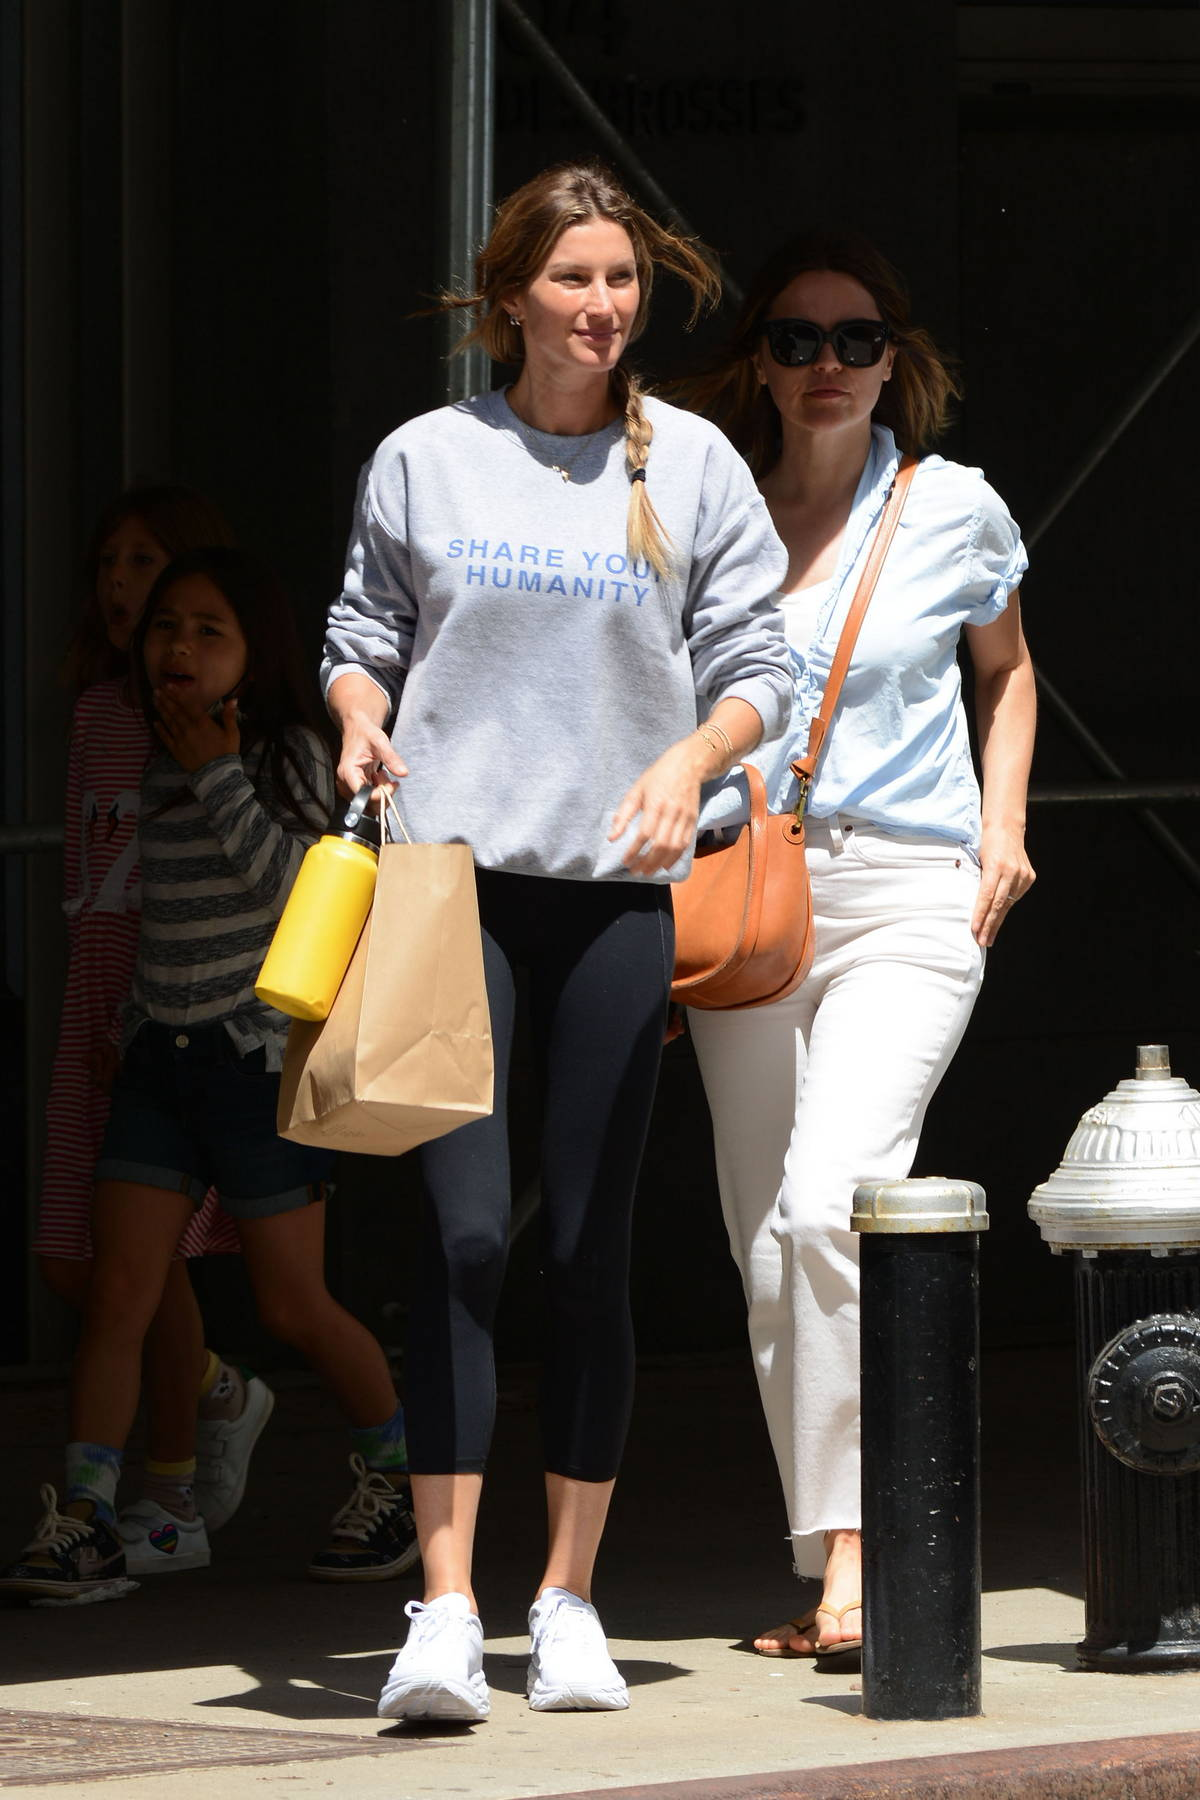 Gisele Bundchen keeps things casual in a sweatshirt and black leggings during a rare outing in New York City